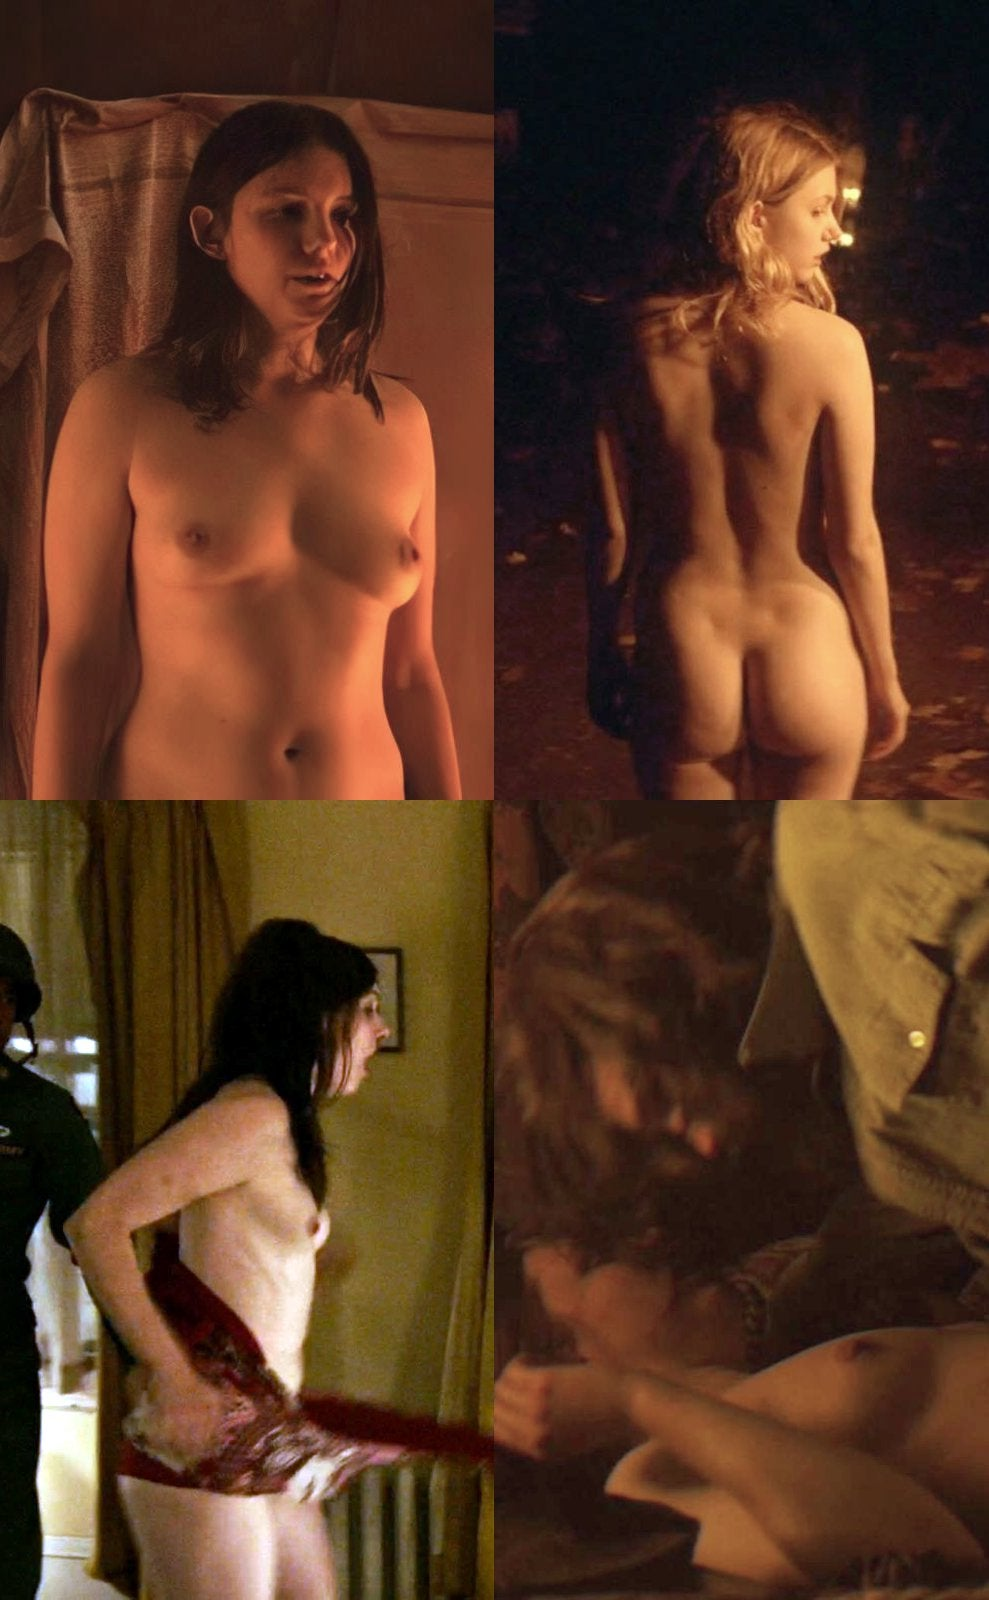 Hannah Murray (Gilly from GoT) looks nice naked